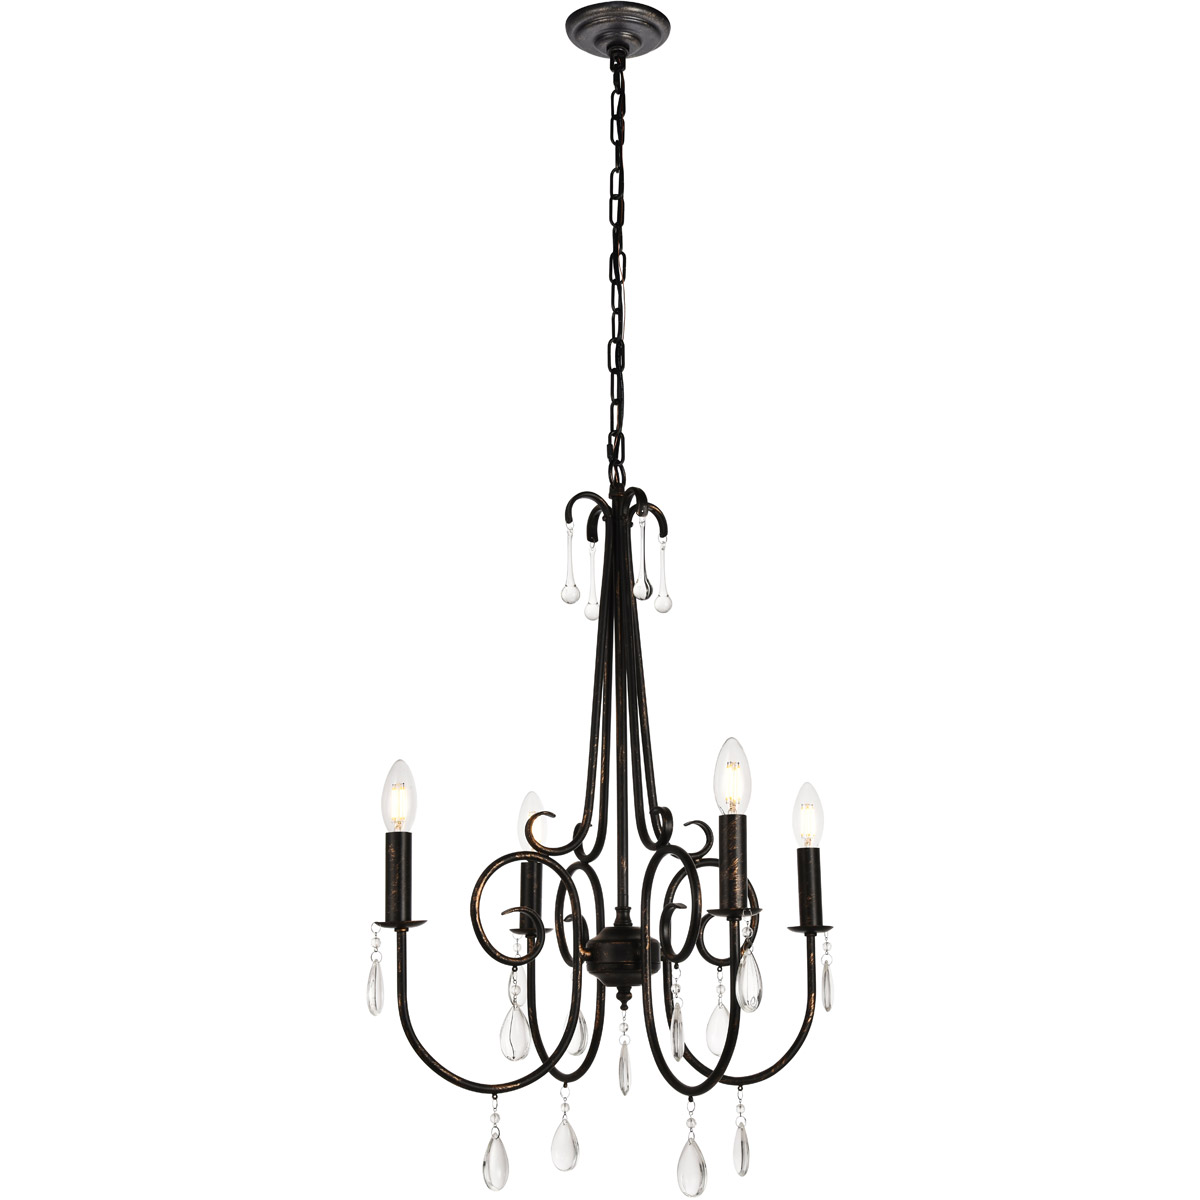 Black Wrought Iron Kitchen Light Fixtures 4 Light 29